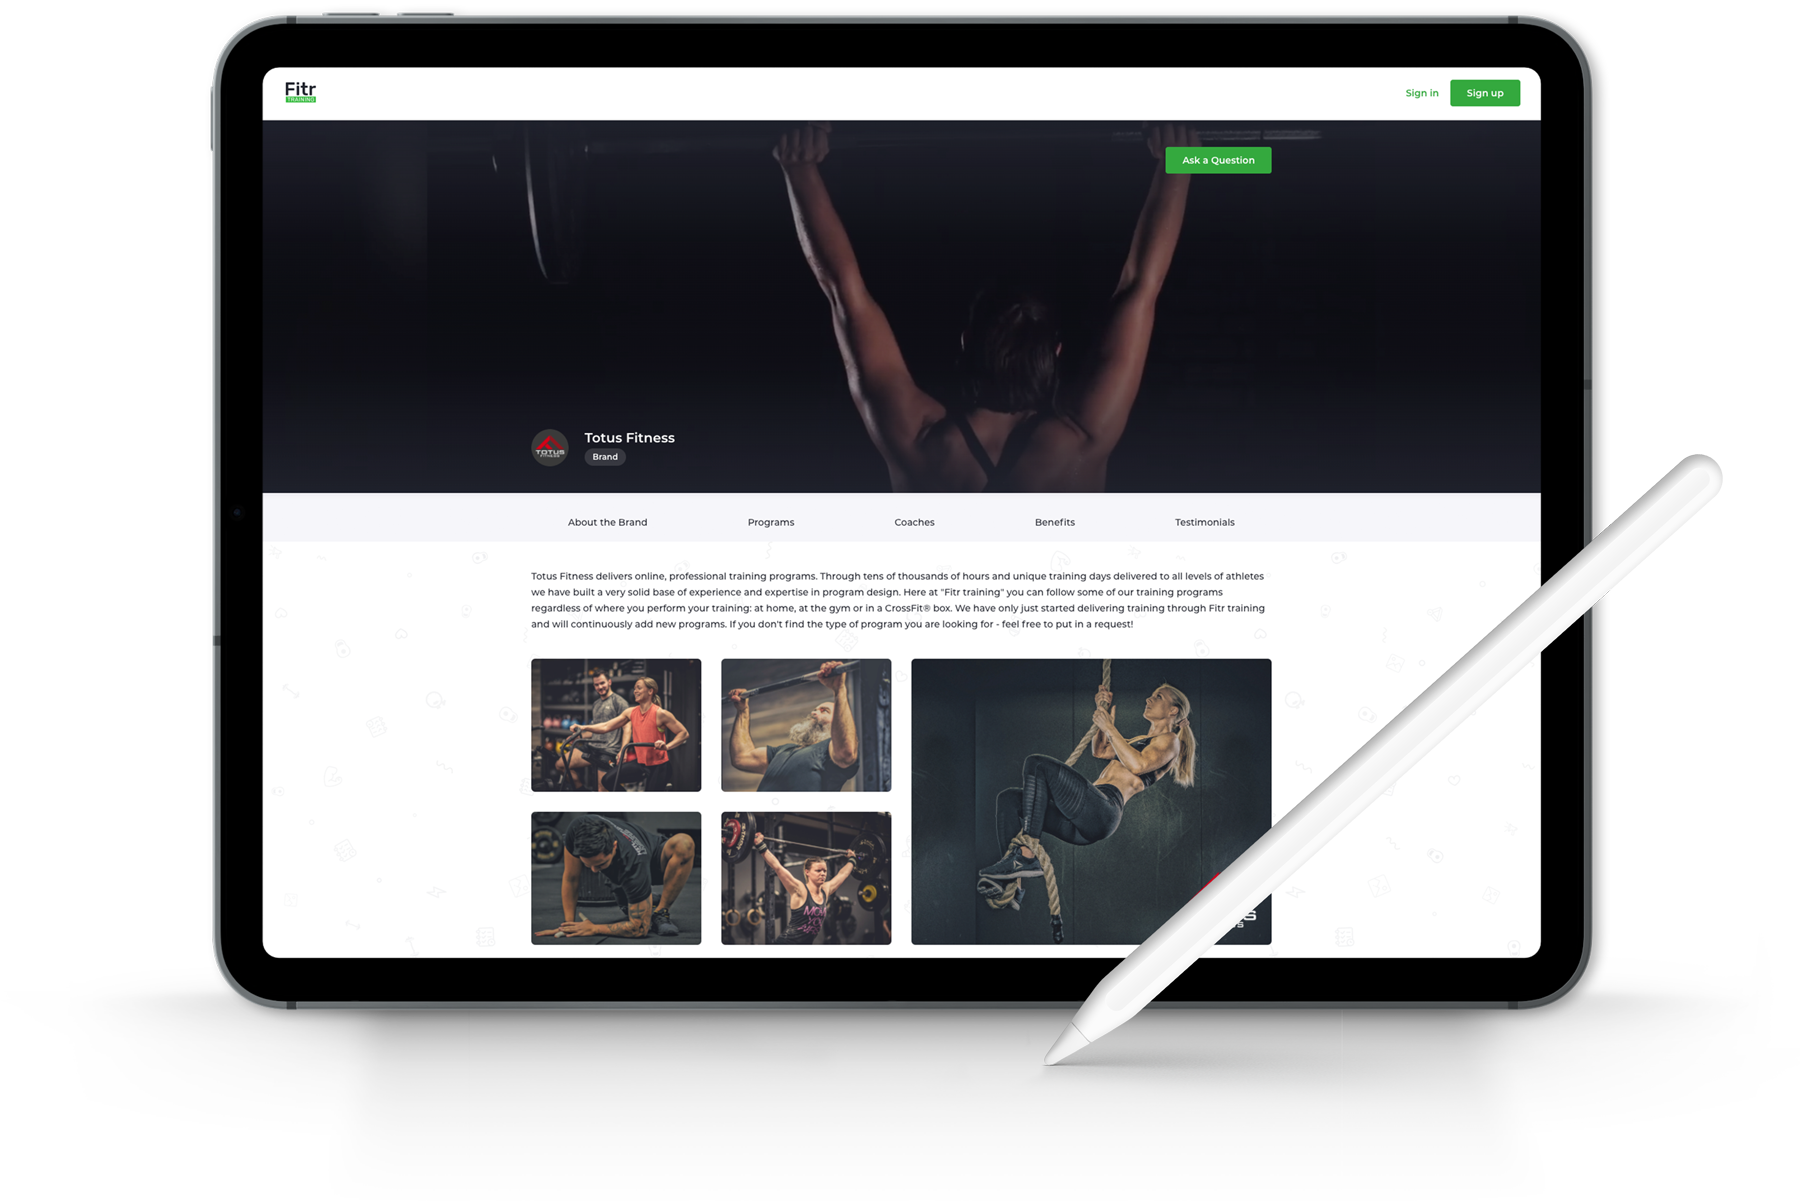 Tablet showing customised website page for a personal trainer or coach looking to sell remote training online